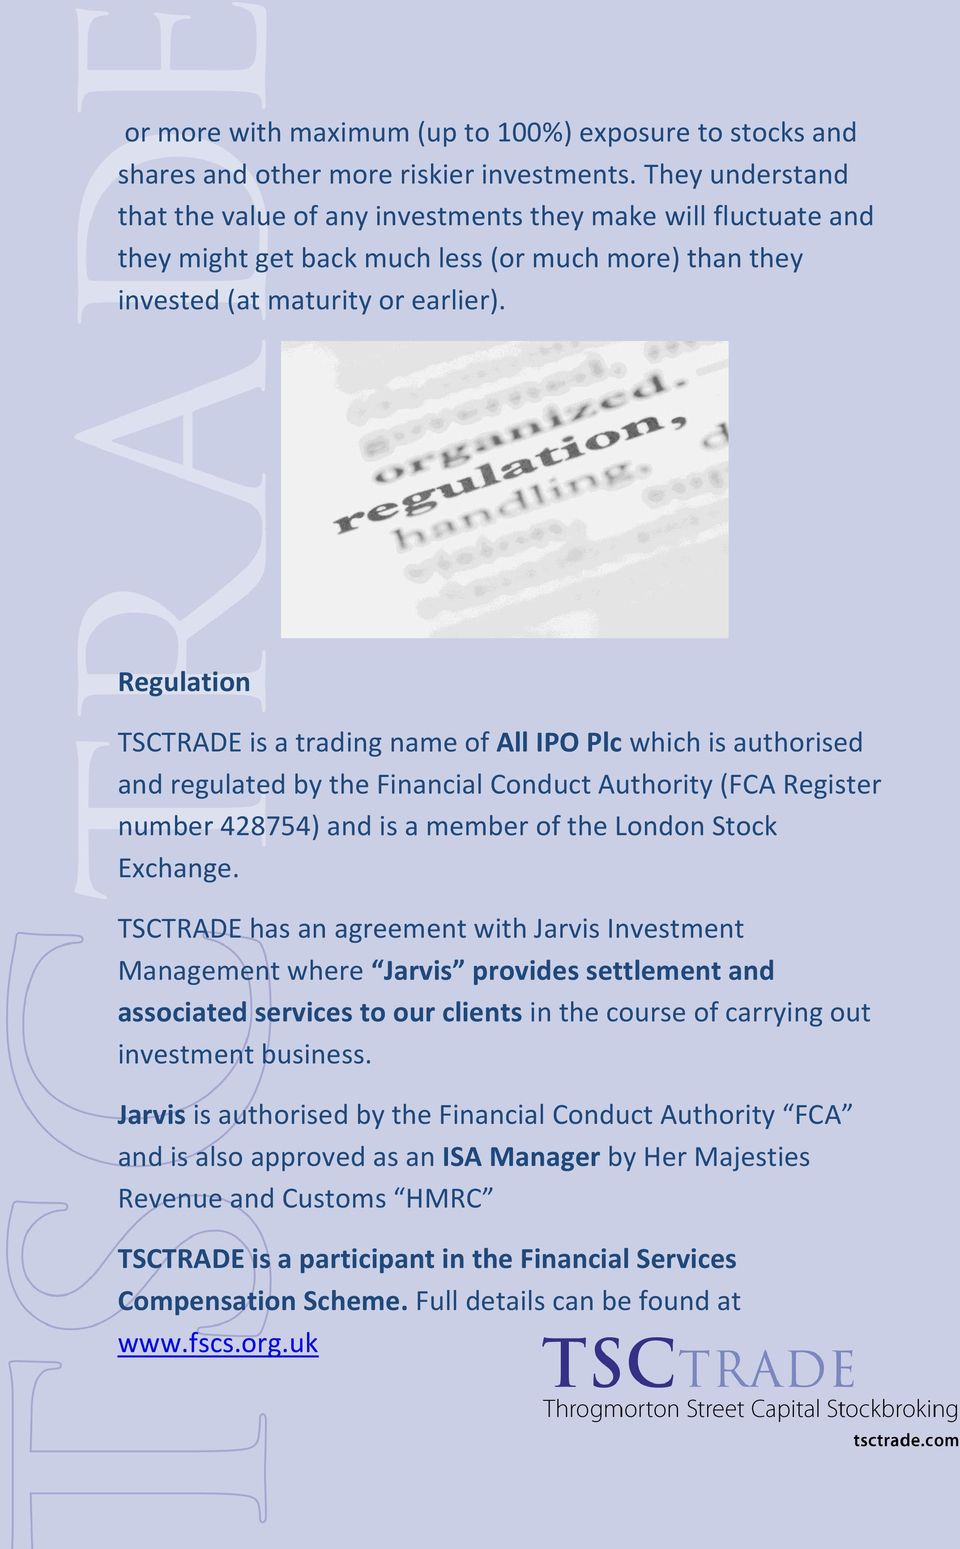 Regulation TSCTRADE is a trading name of All IPO Plc which is authorised and regulated by the Financial Conduct Authority (FCA Register number 428754) and is a member of the London Stock Exchange.